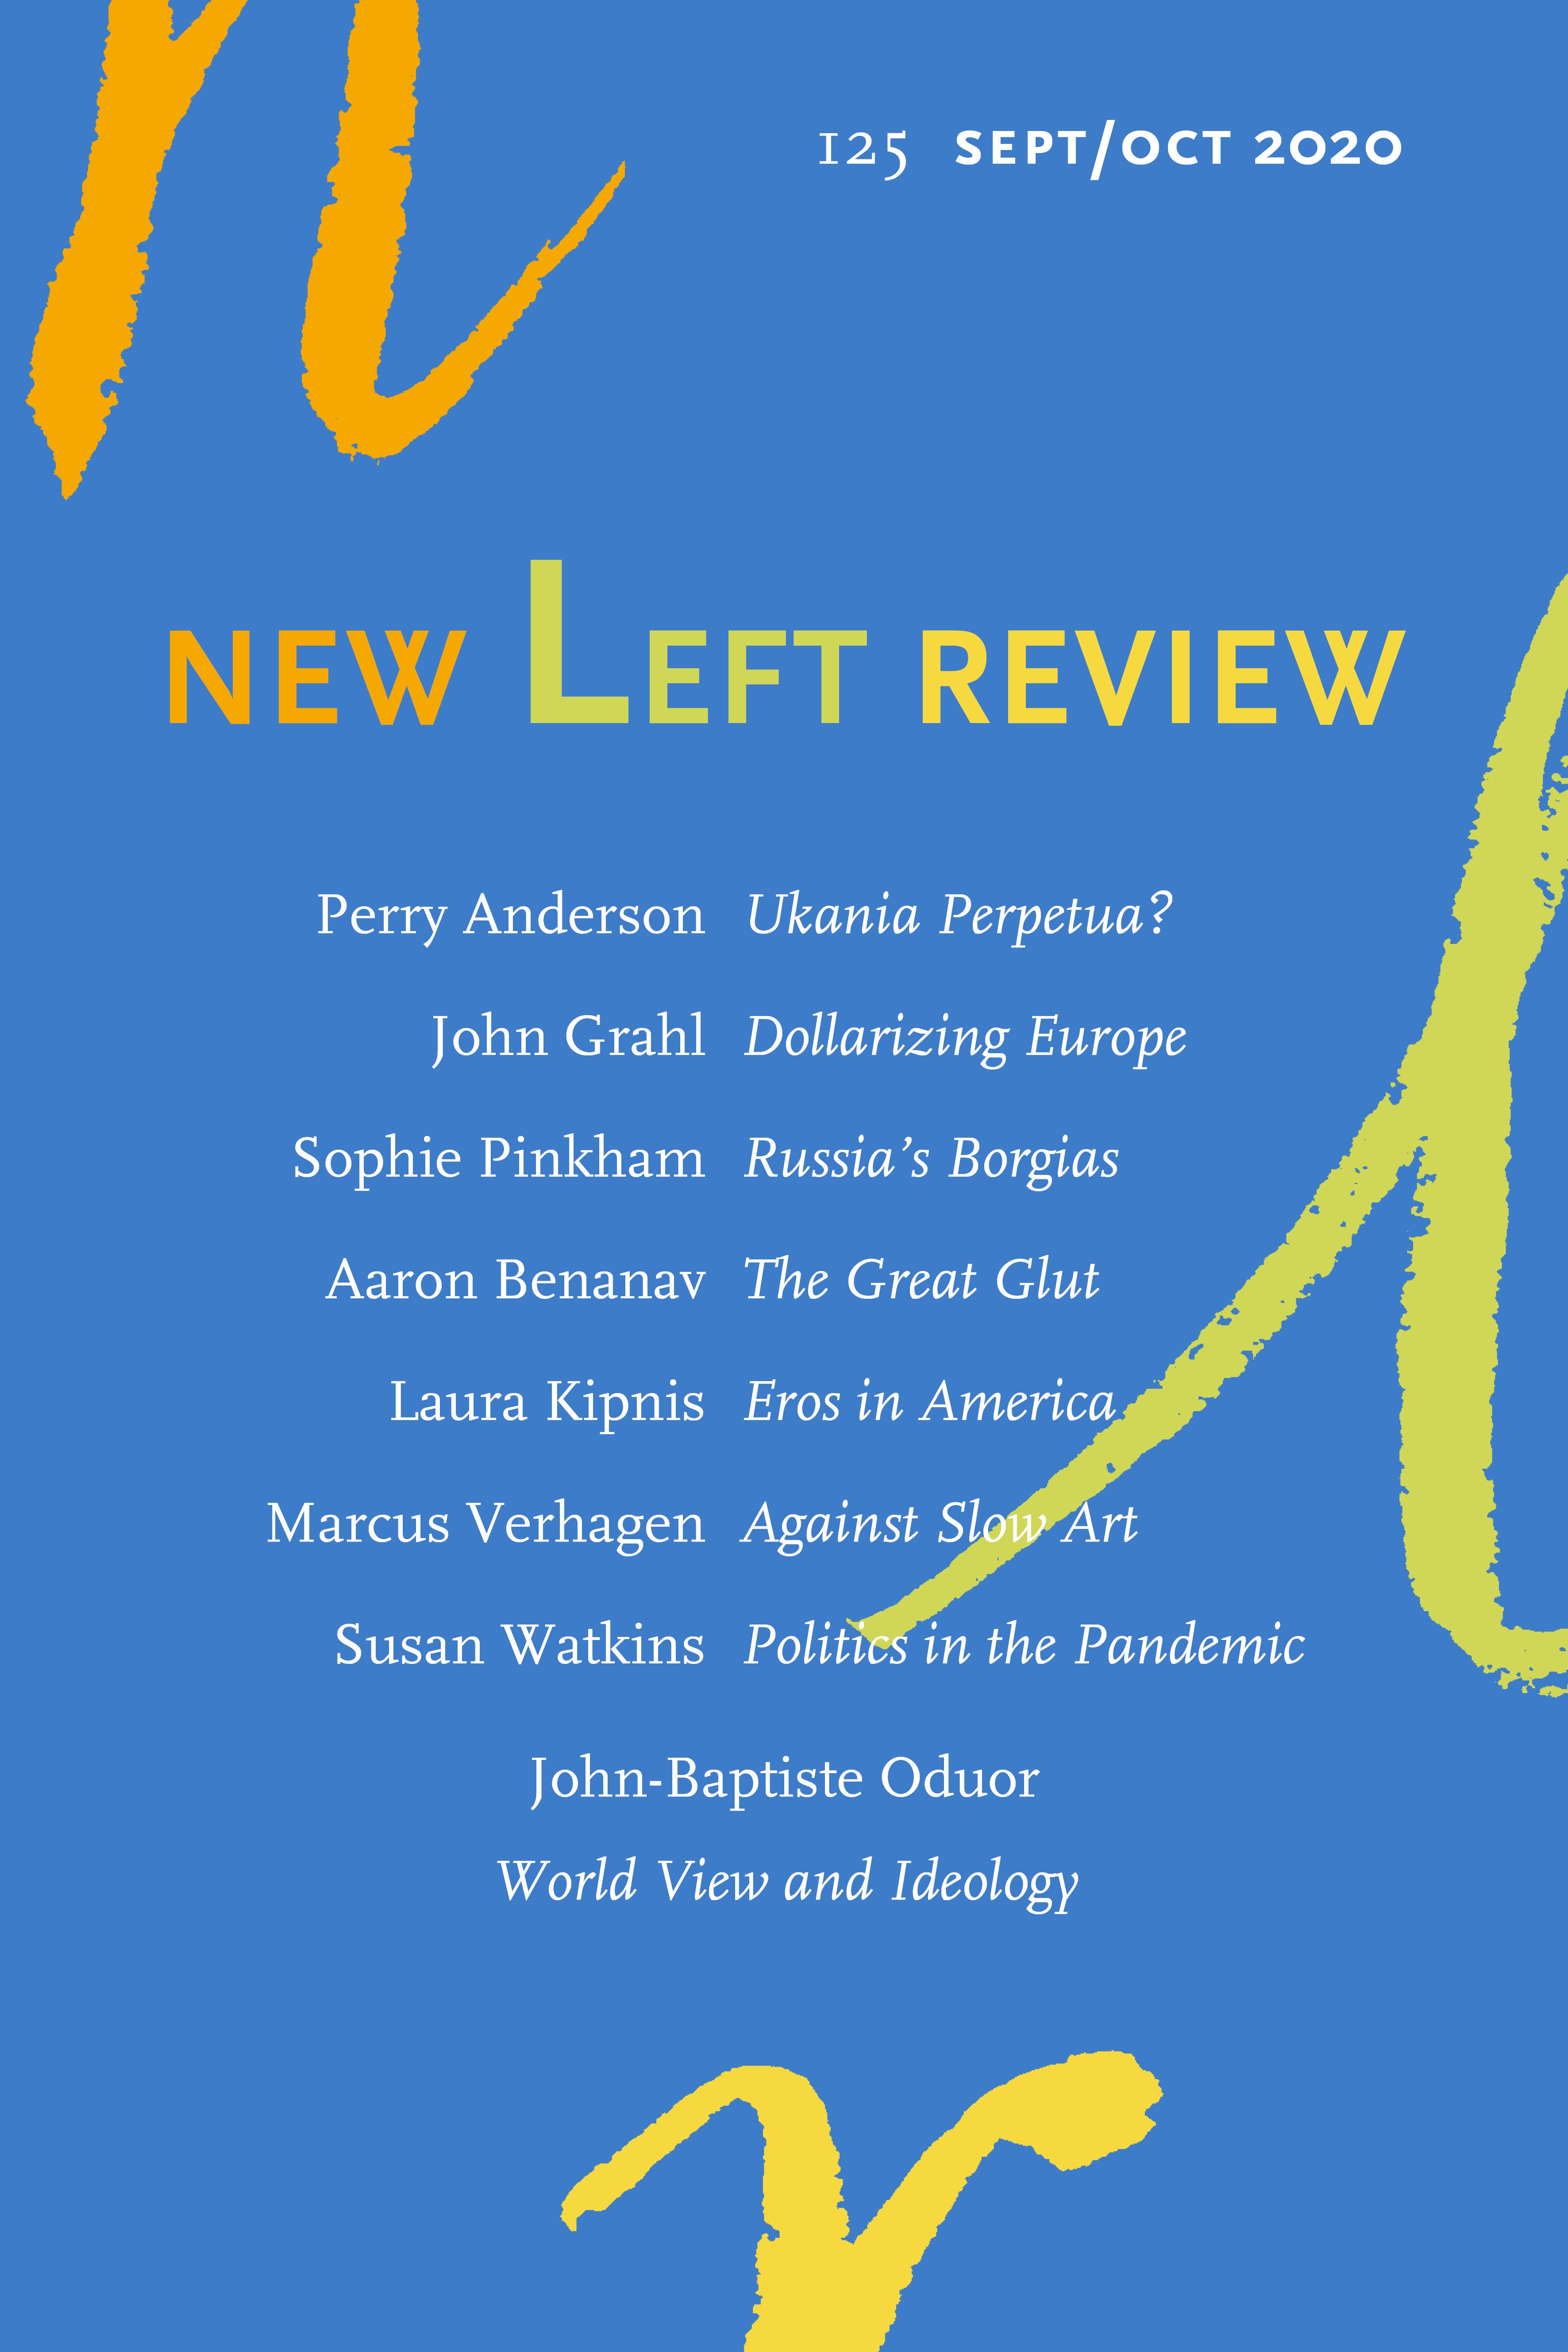 New Left Review, 125